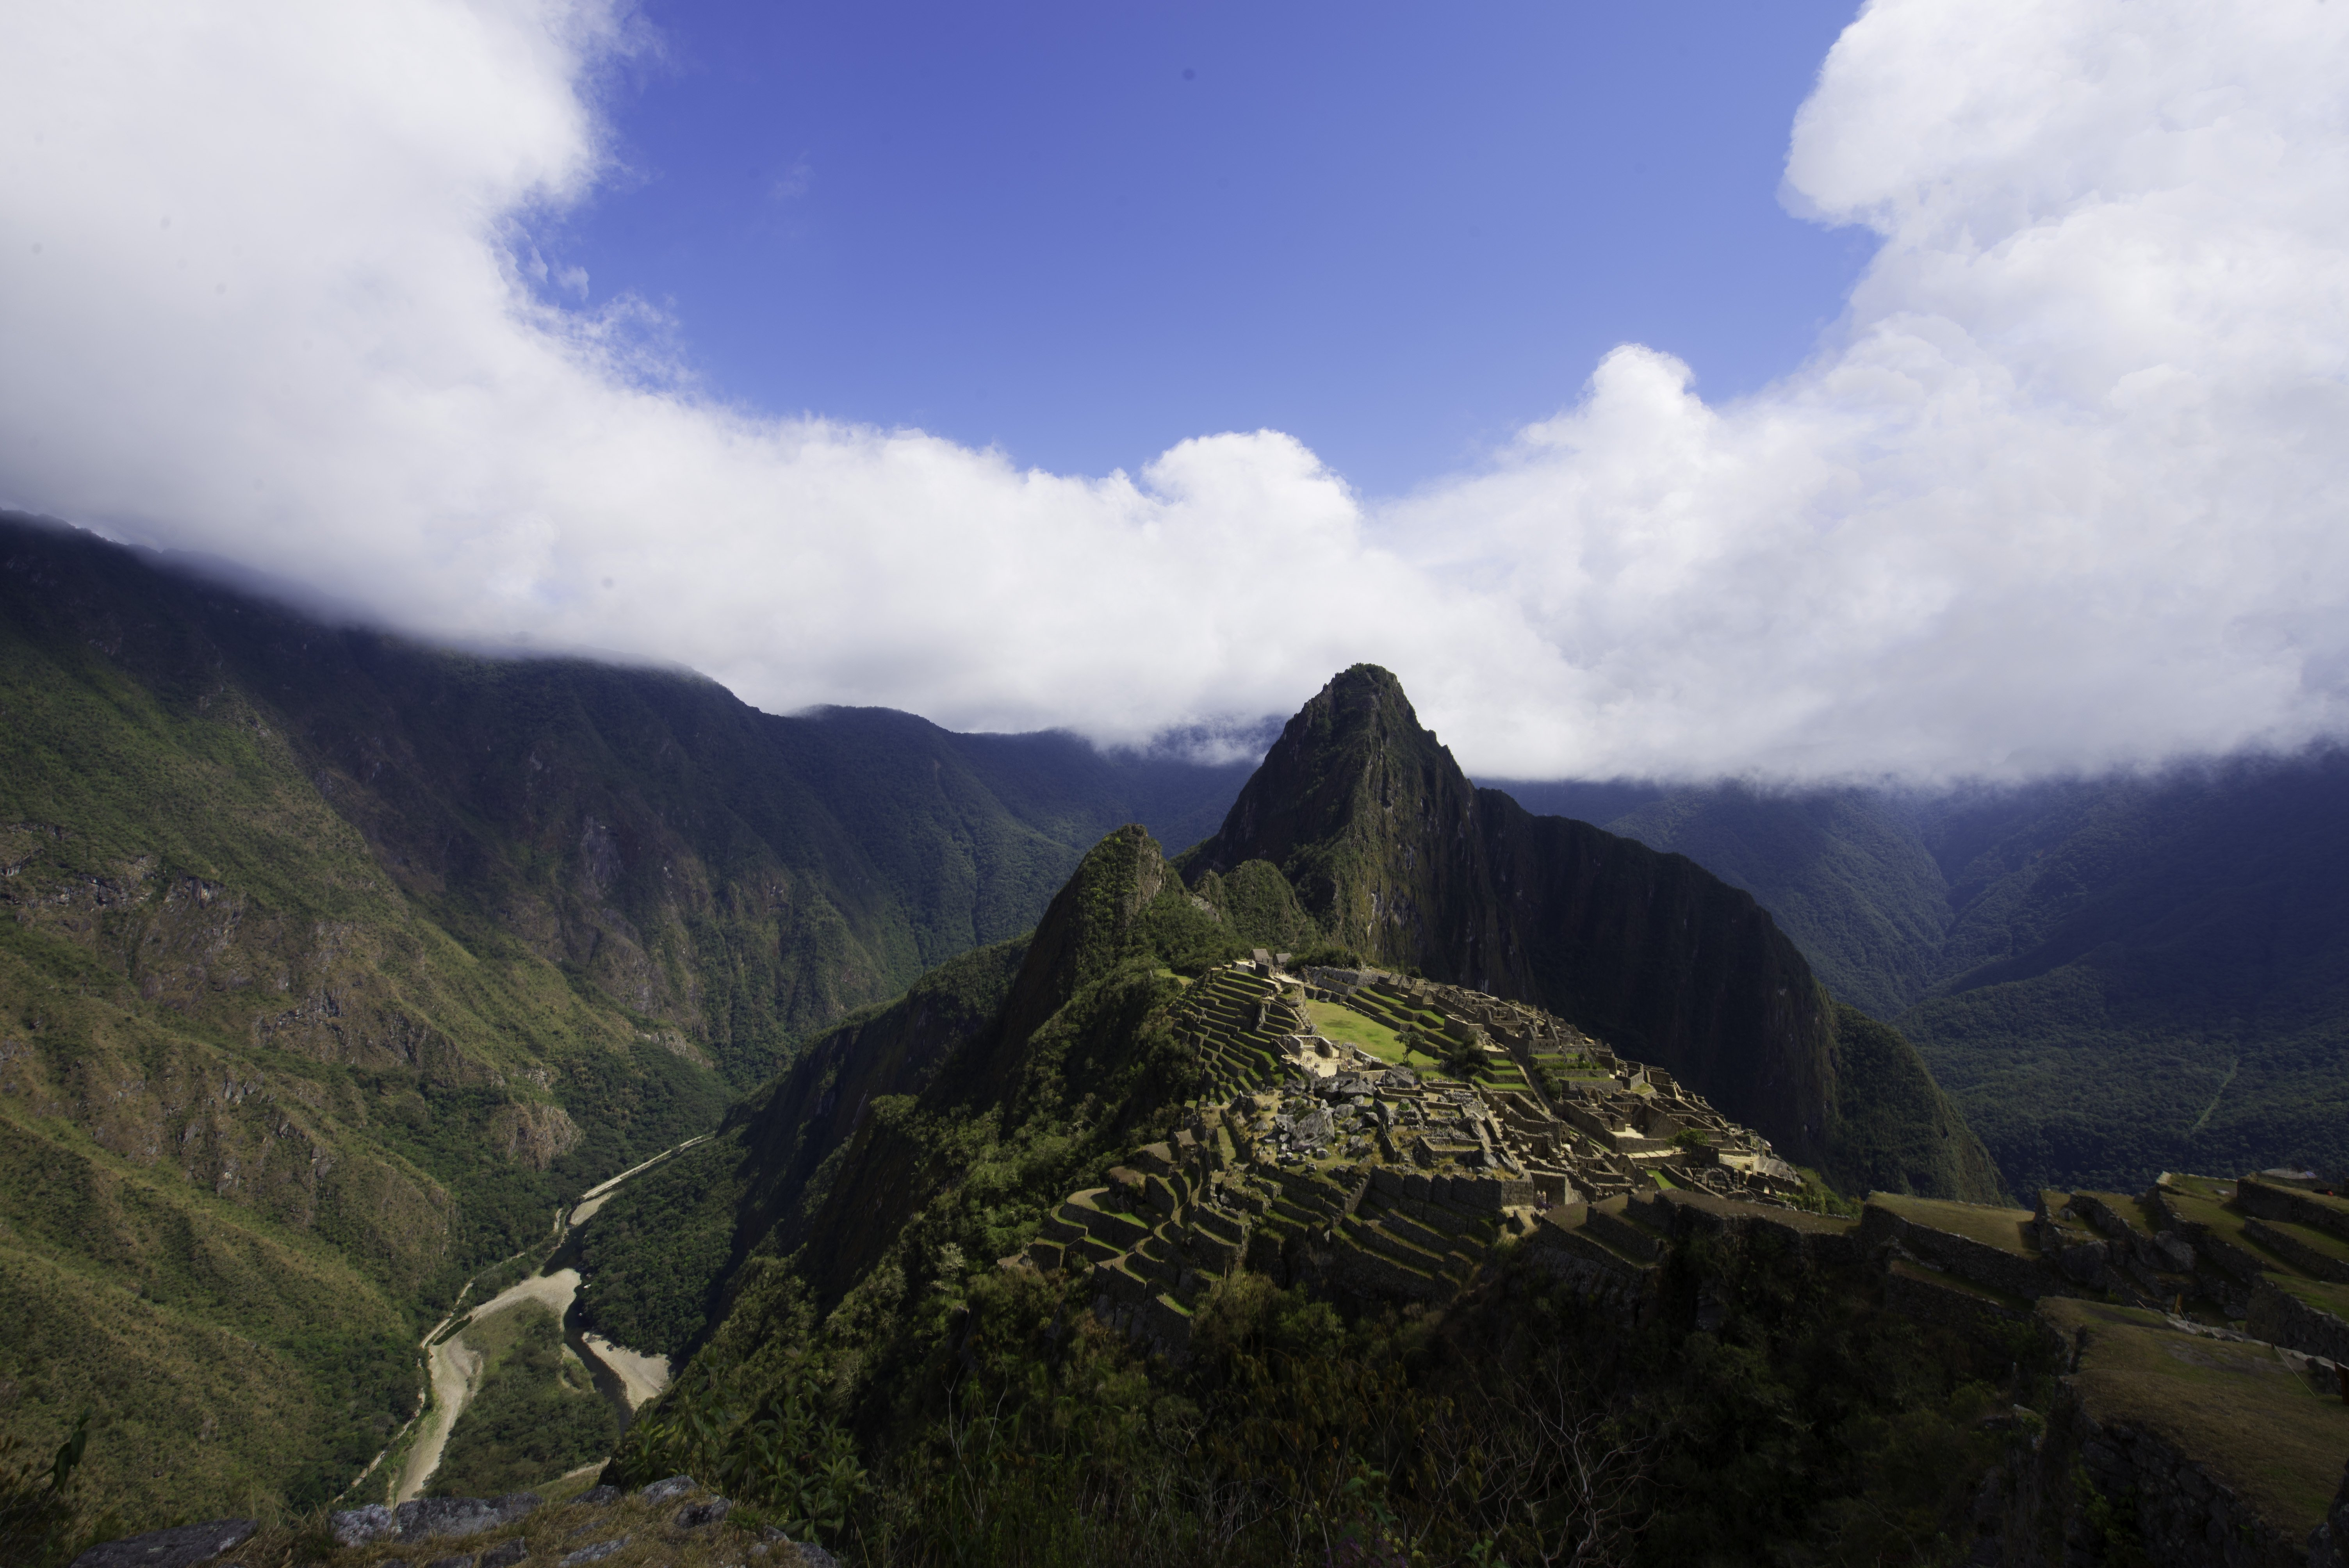 The End of the Inca Trail